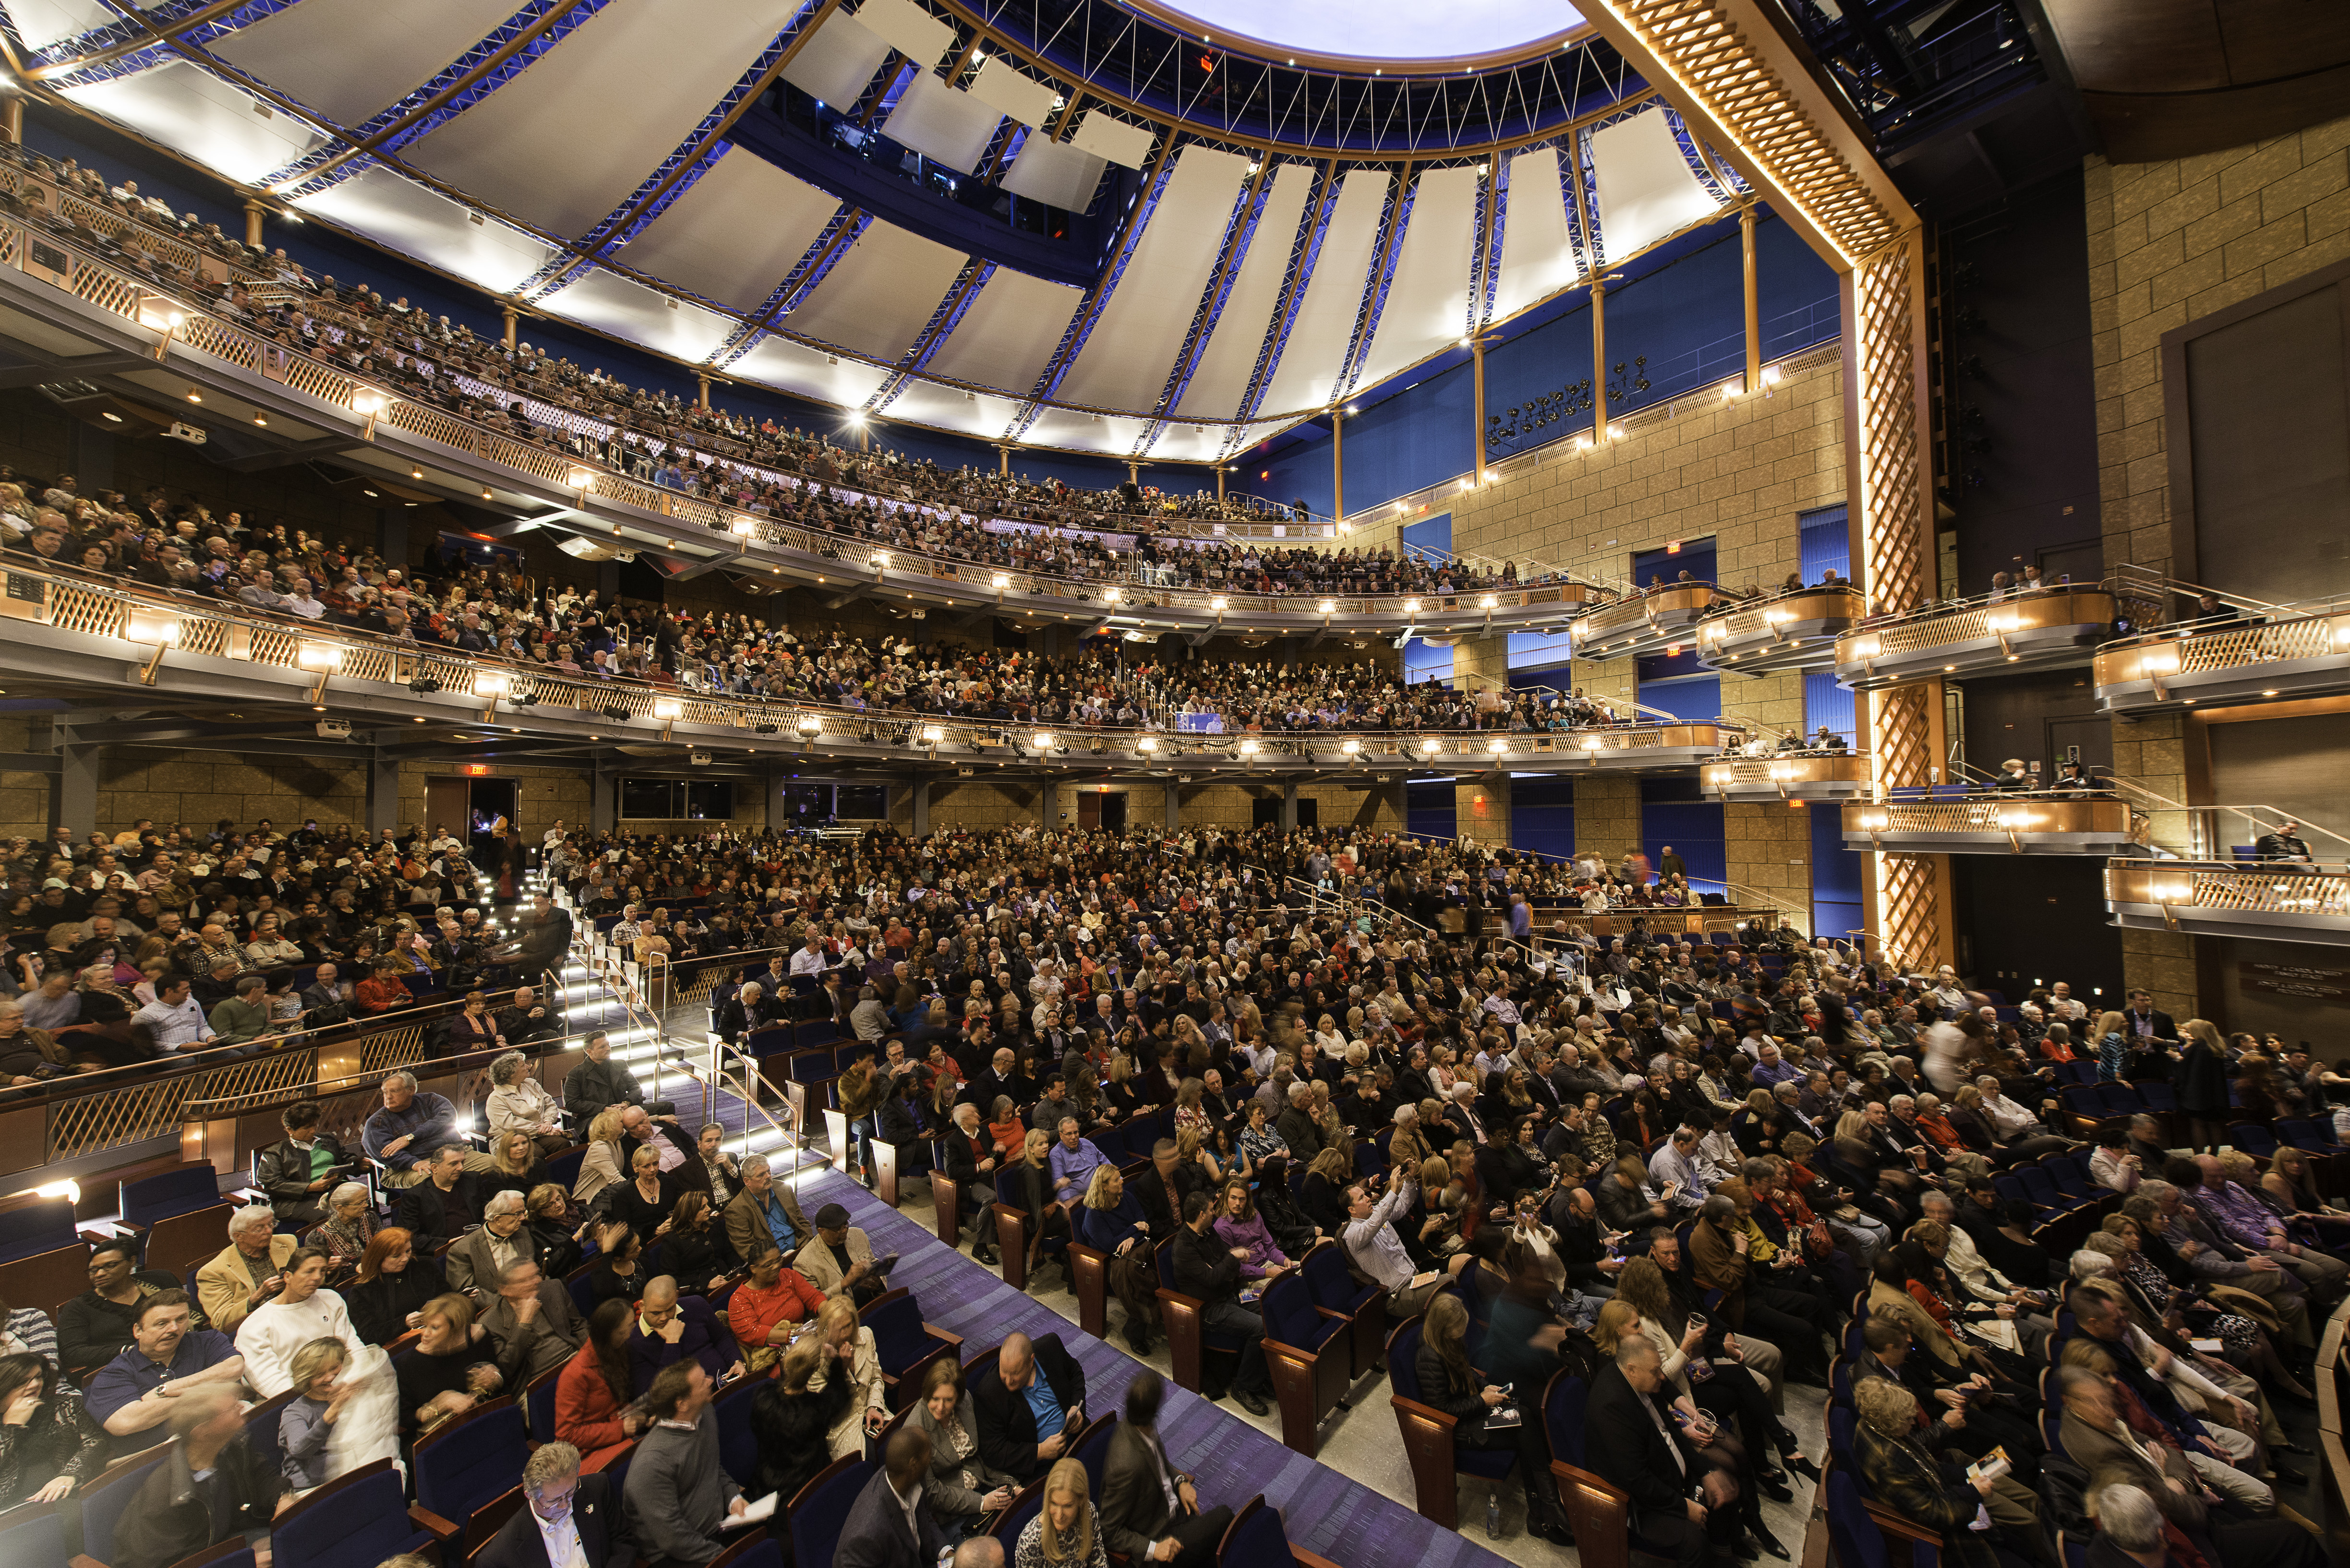 Dr. Phillips Center for the Performing Arts   Theaters ...